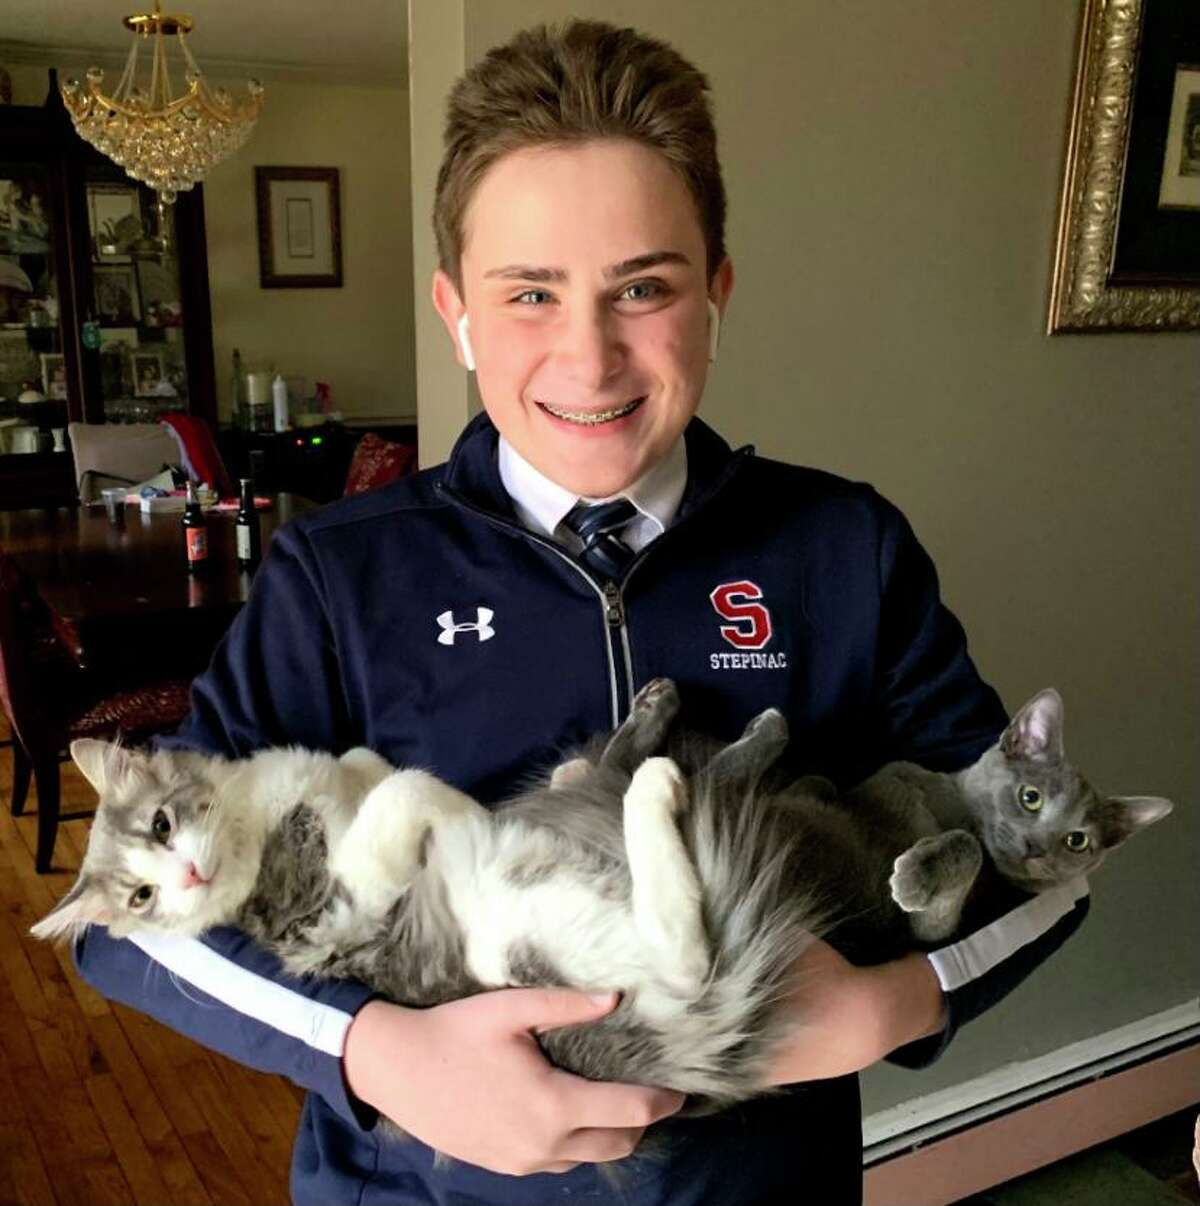 Anthony Raduazzo with two of his family's cats, Pluto and Luna.